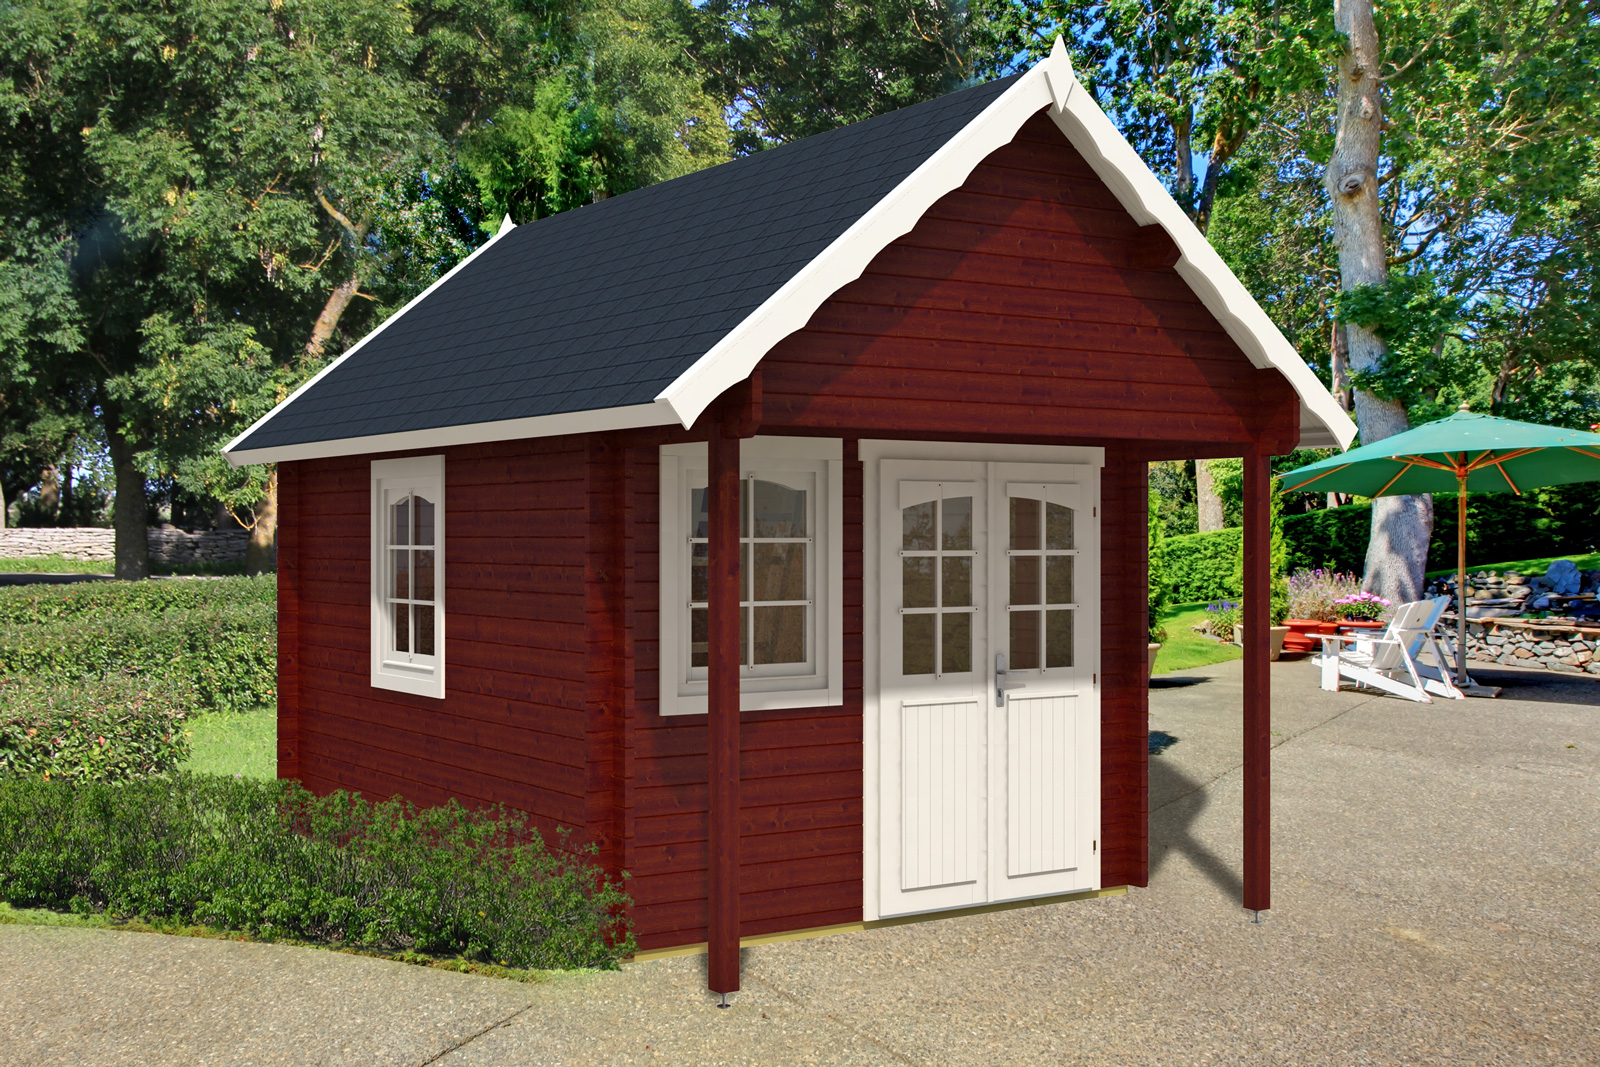 Prefabricated lofts joy studio design gallery best design for Small modular cabins and cottages